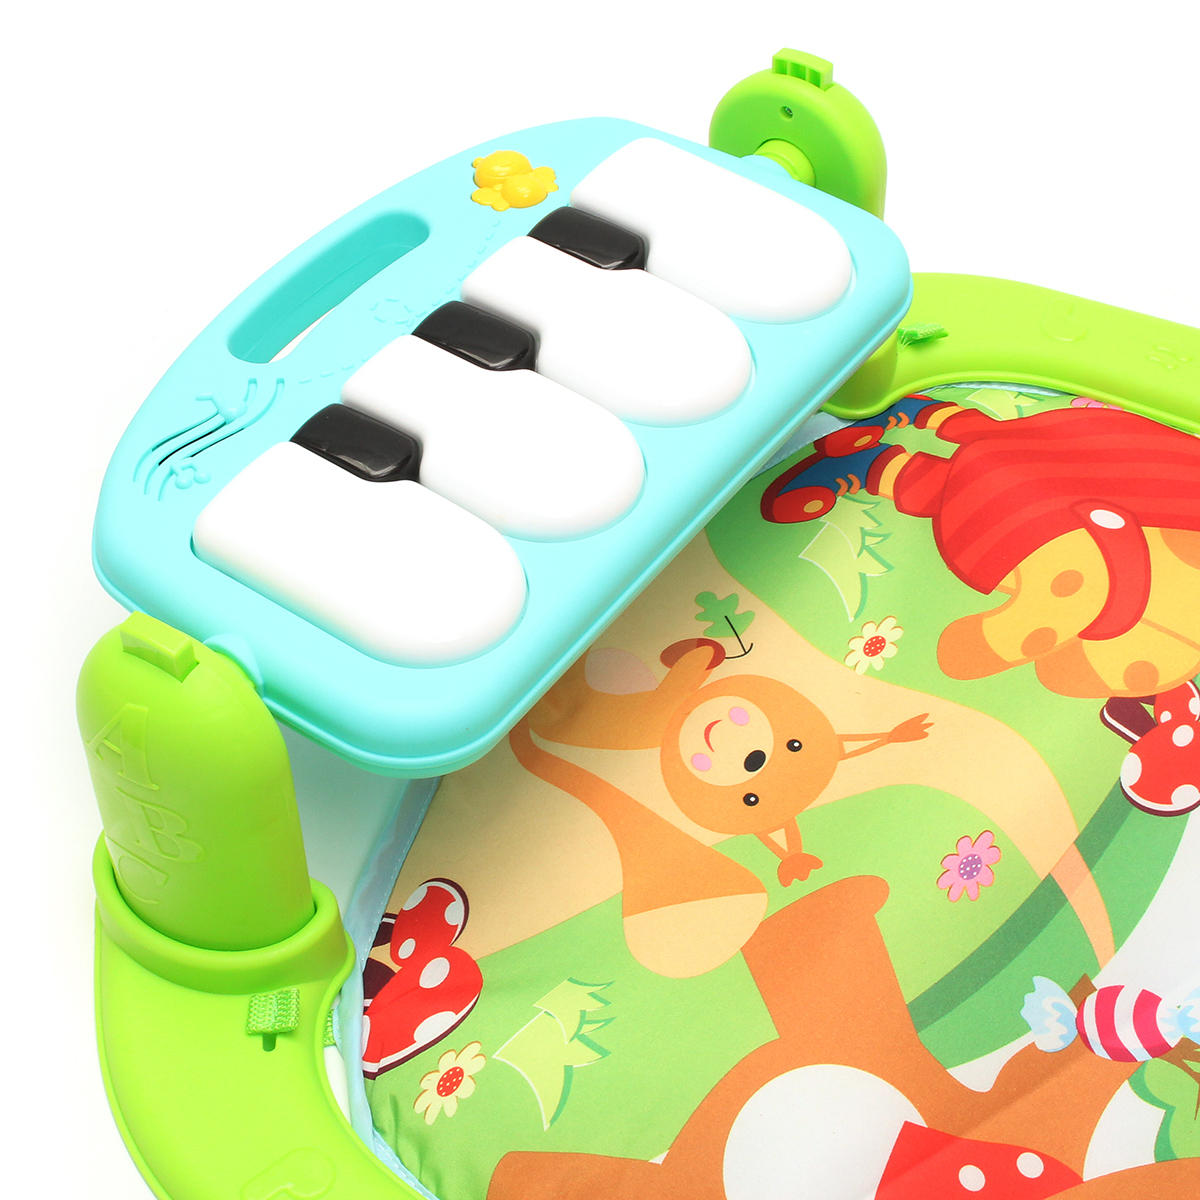 Foot Play Piano Musical Lullaby Baby Activity Playmat Gym Toy Soft Baby Play Mat - 11